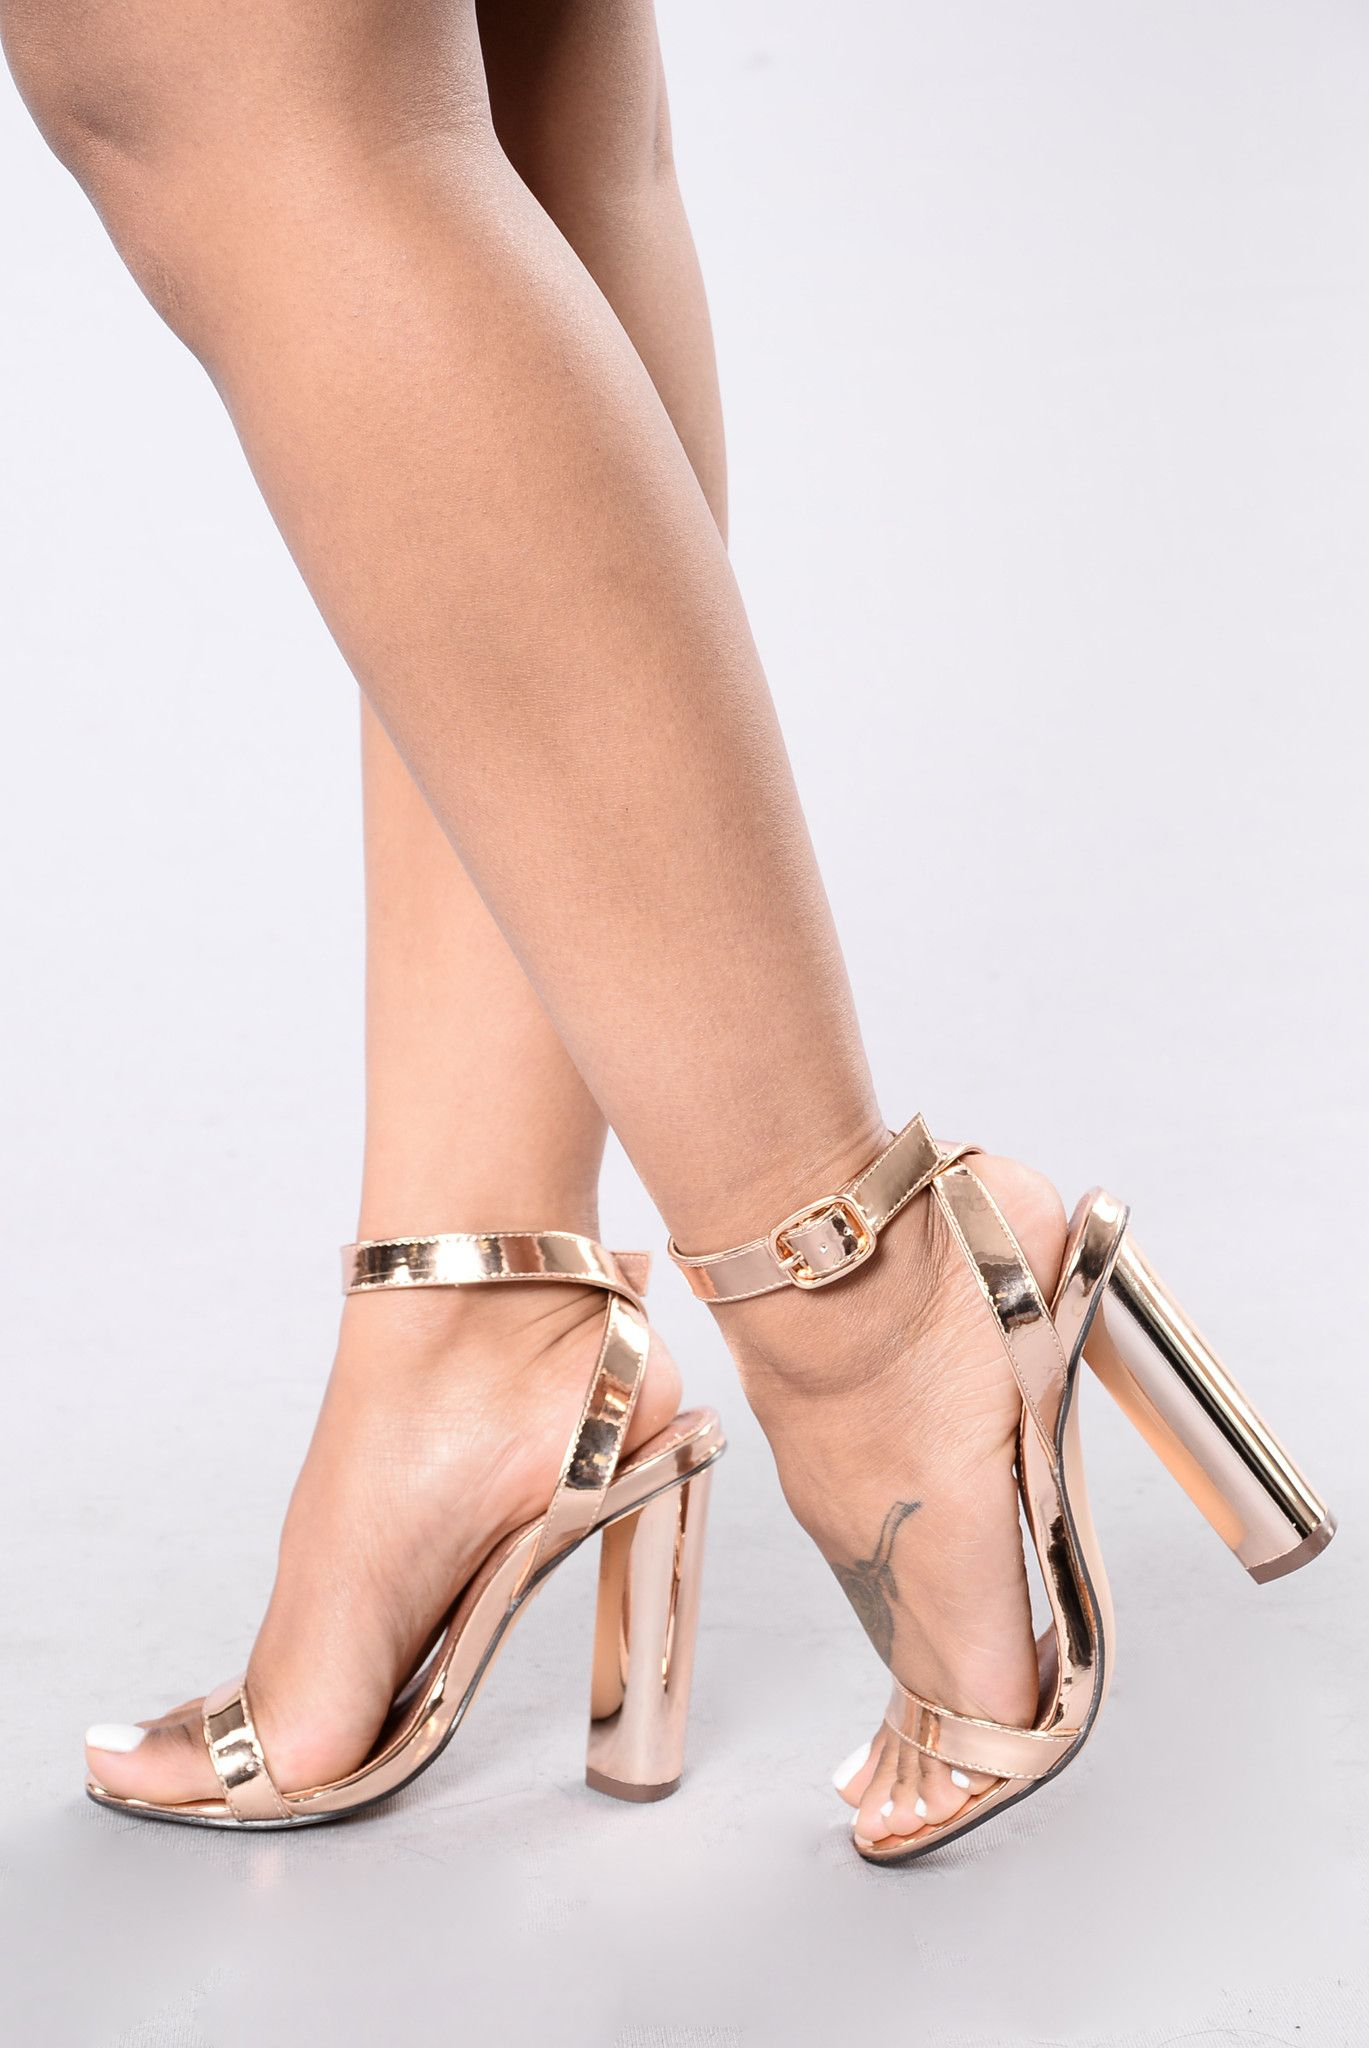 Simple And Sleek Heel - Rose Gold | Patent leather, Sole and Metallic